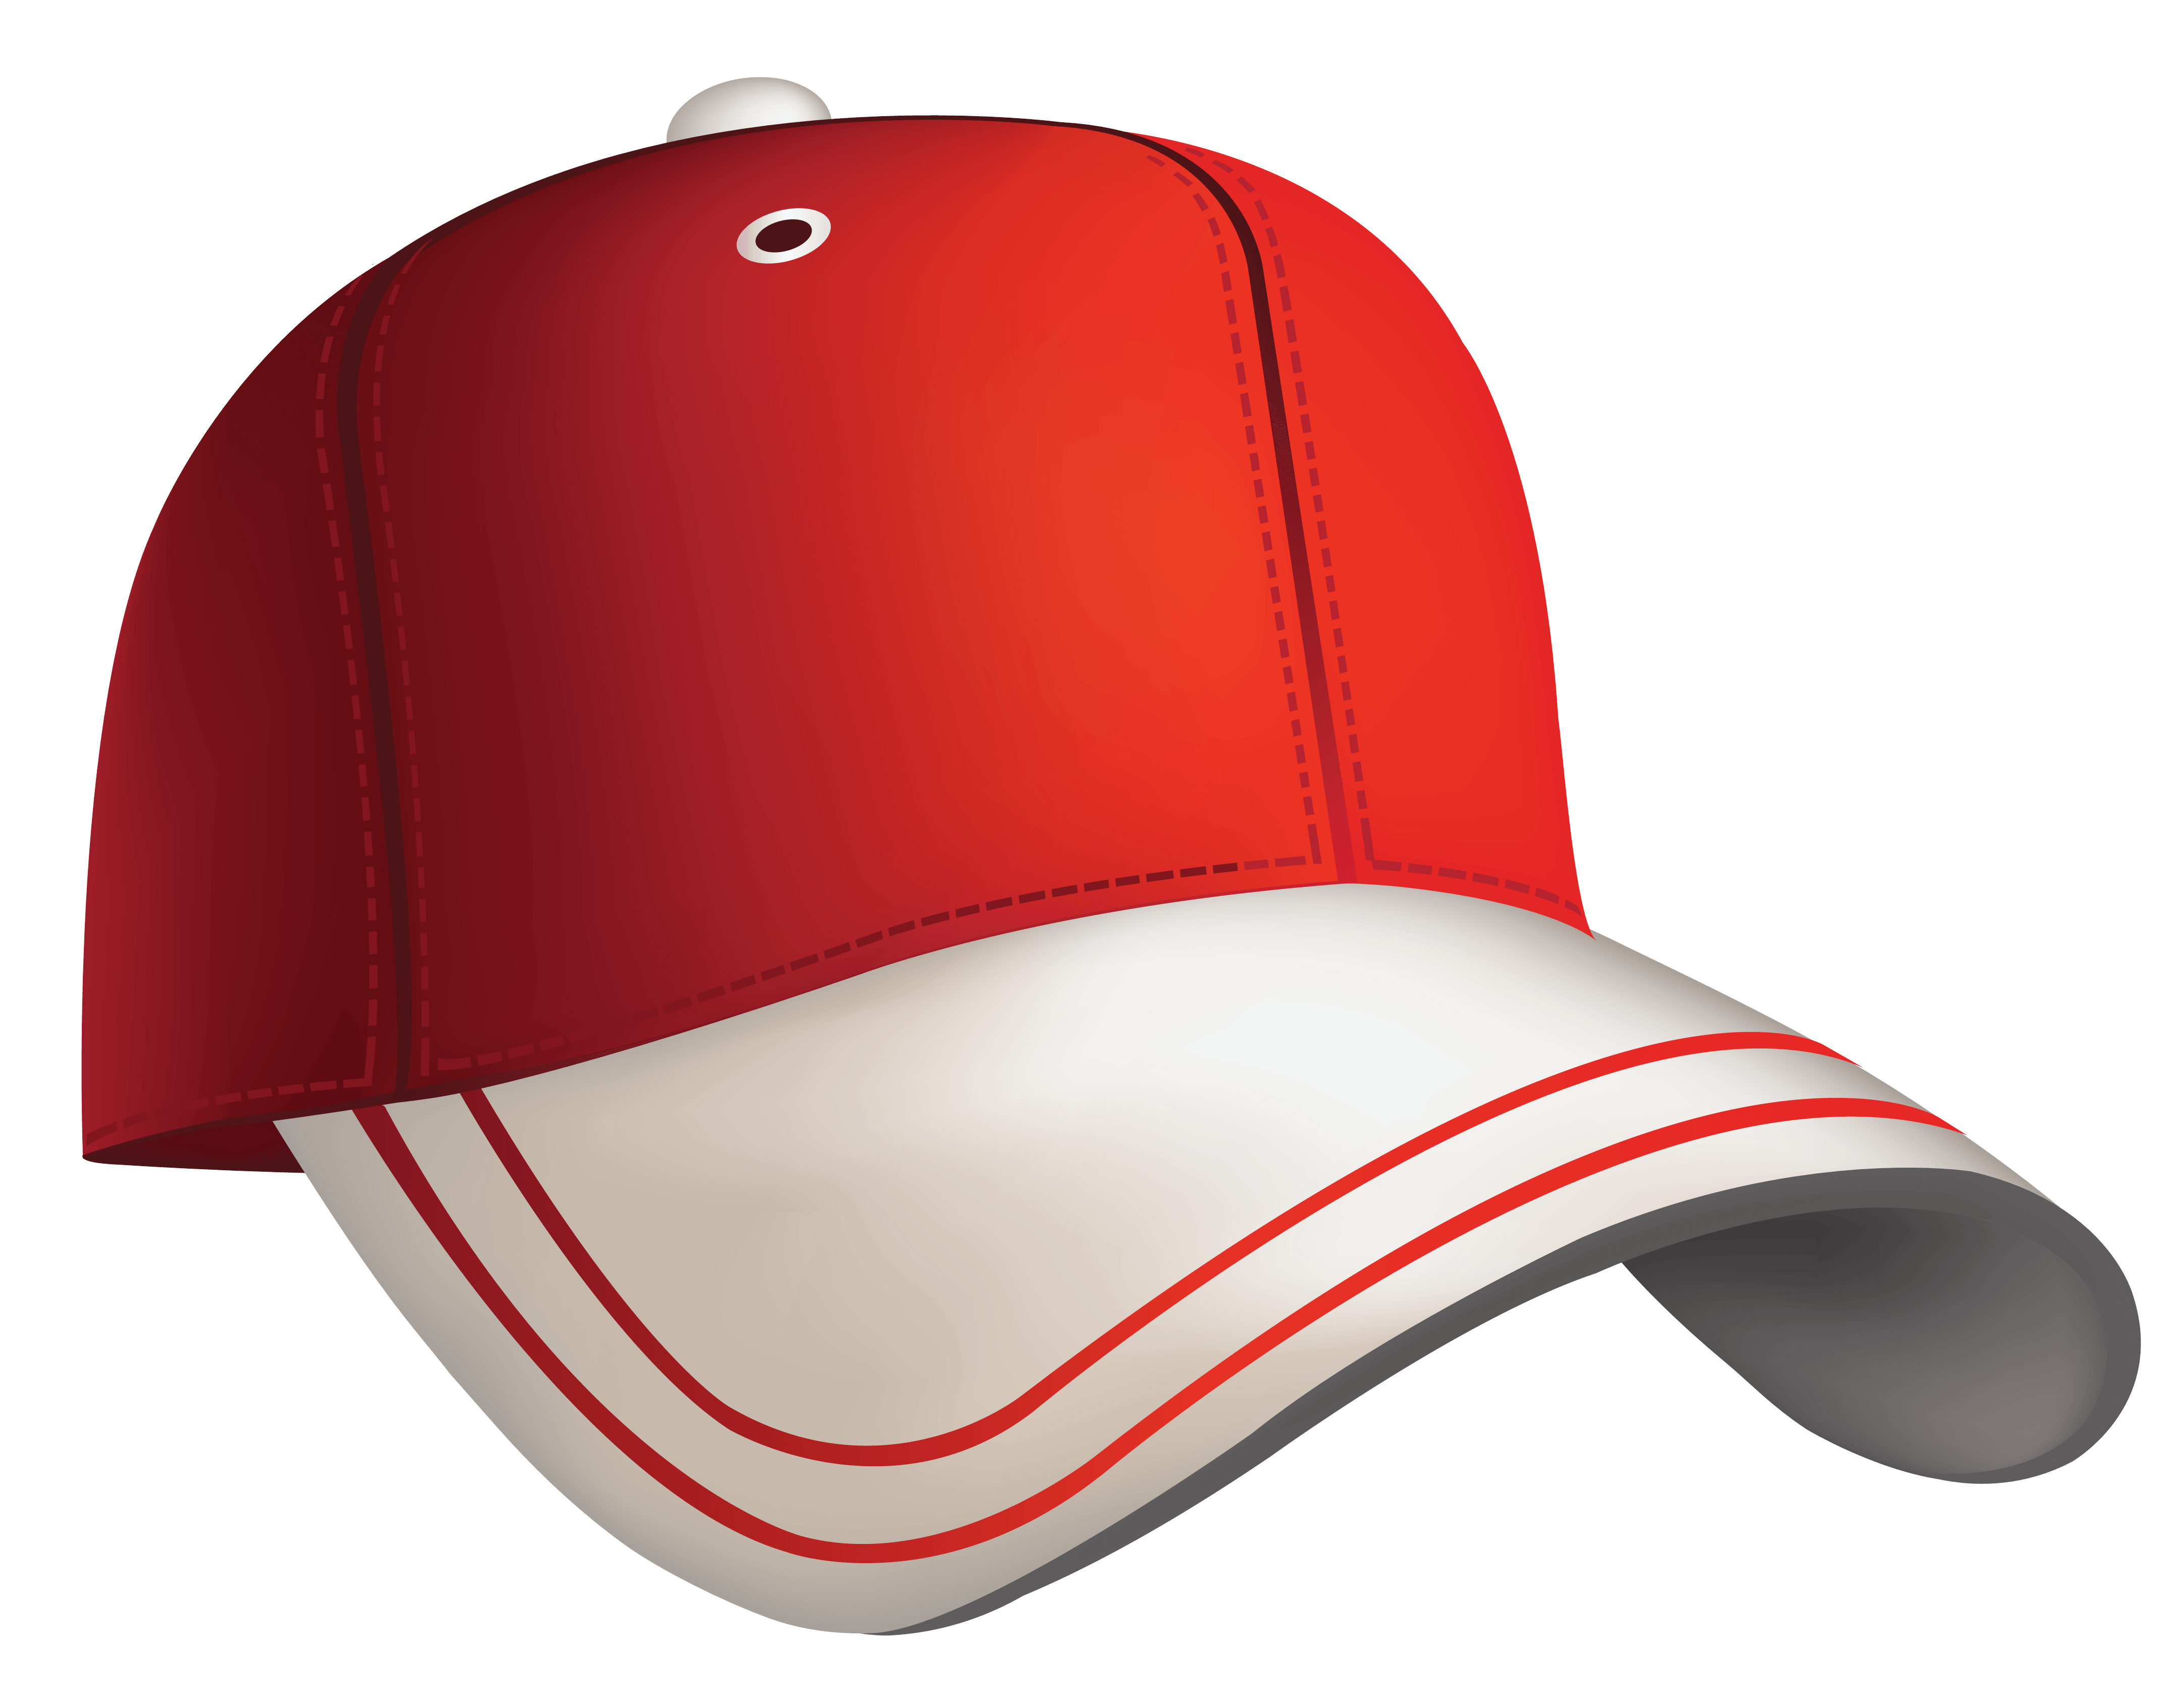 Red Baseball Cap PNG Transparent image - Baseball Cap PNG